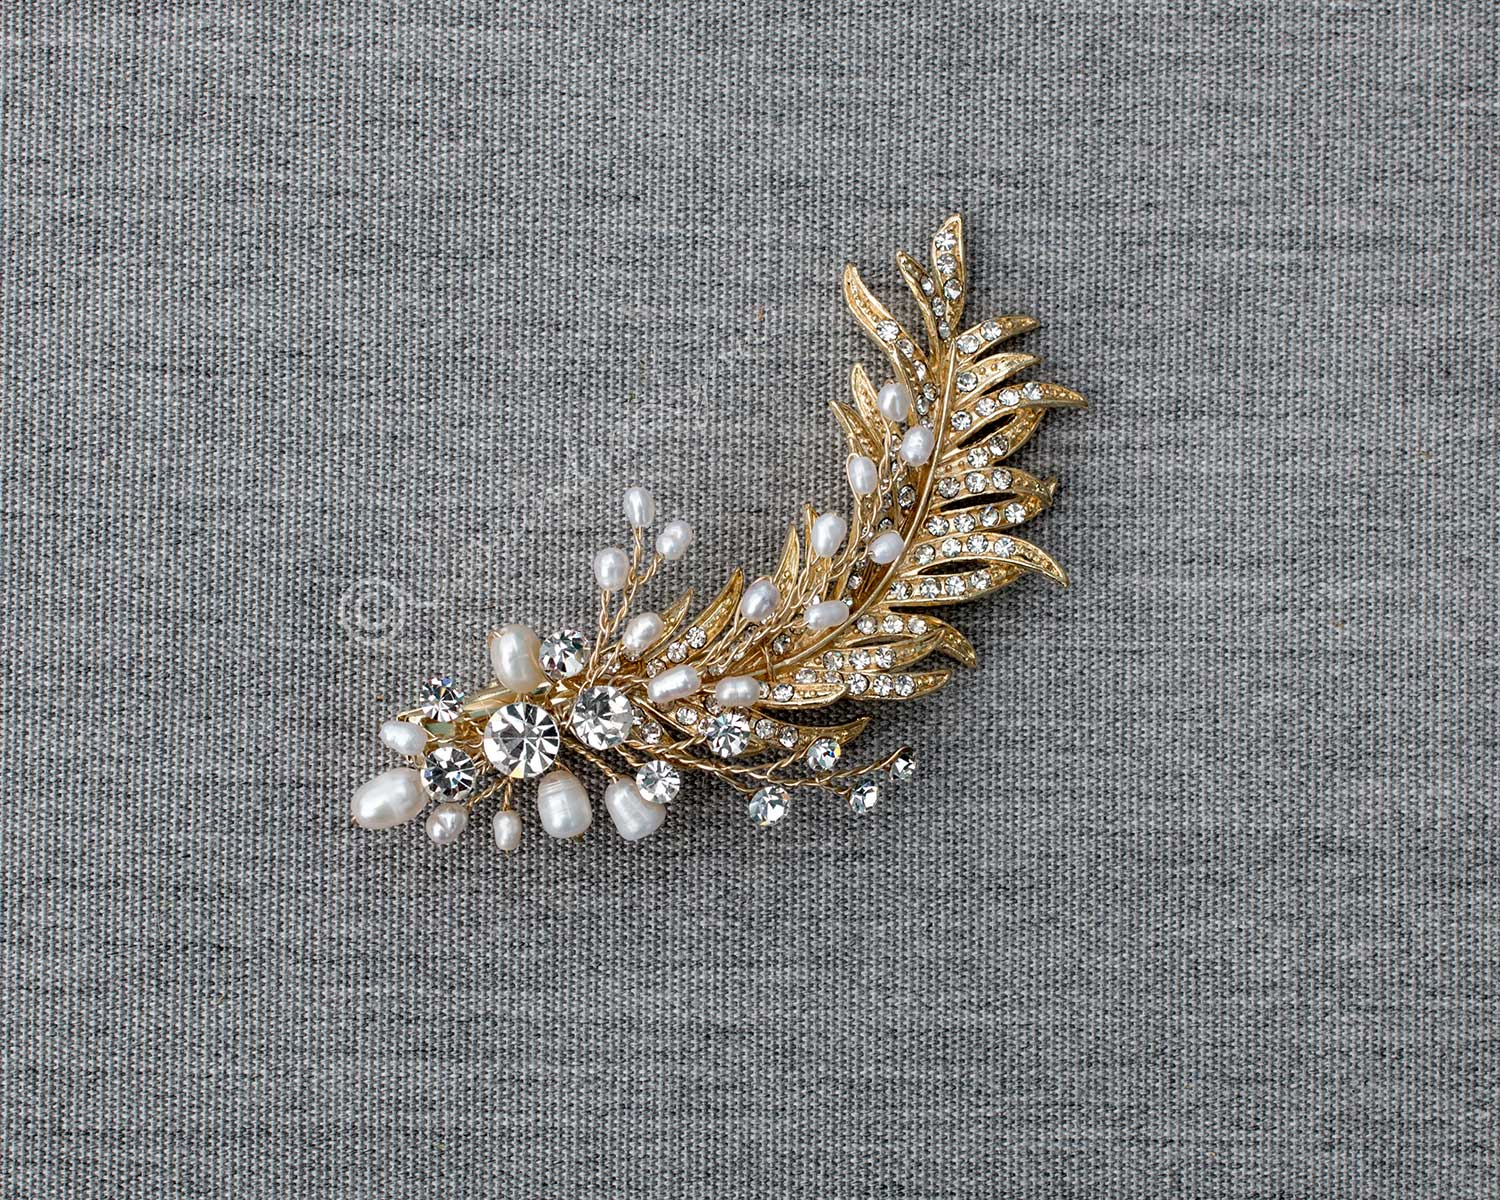 Gold Feather Hair Clip with Pearls Roaring 20's